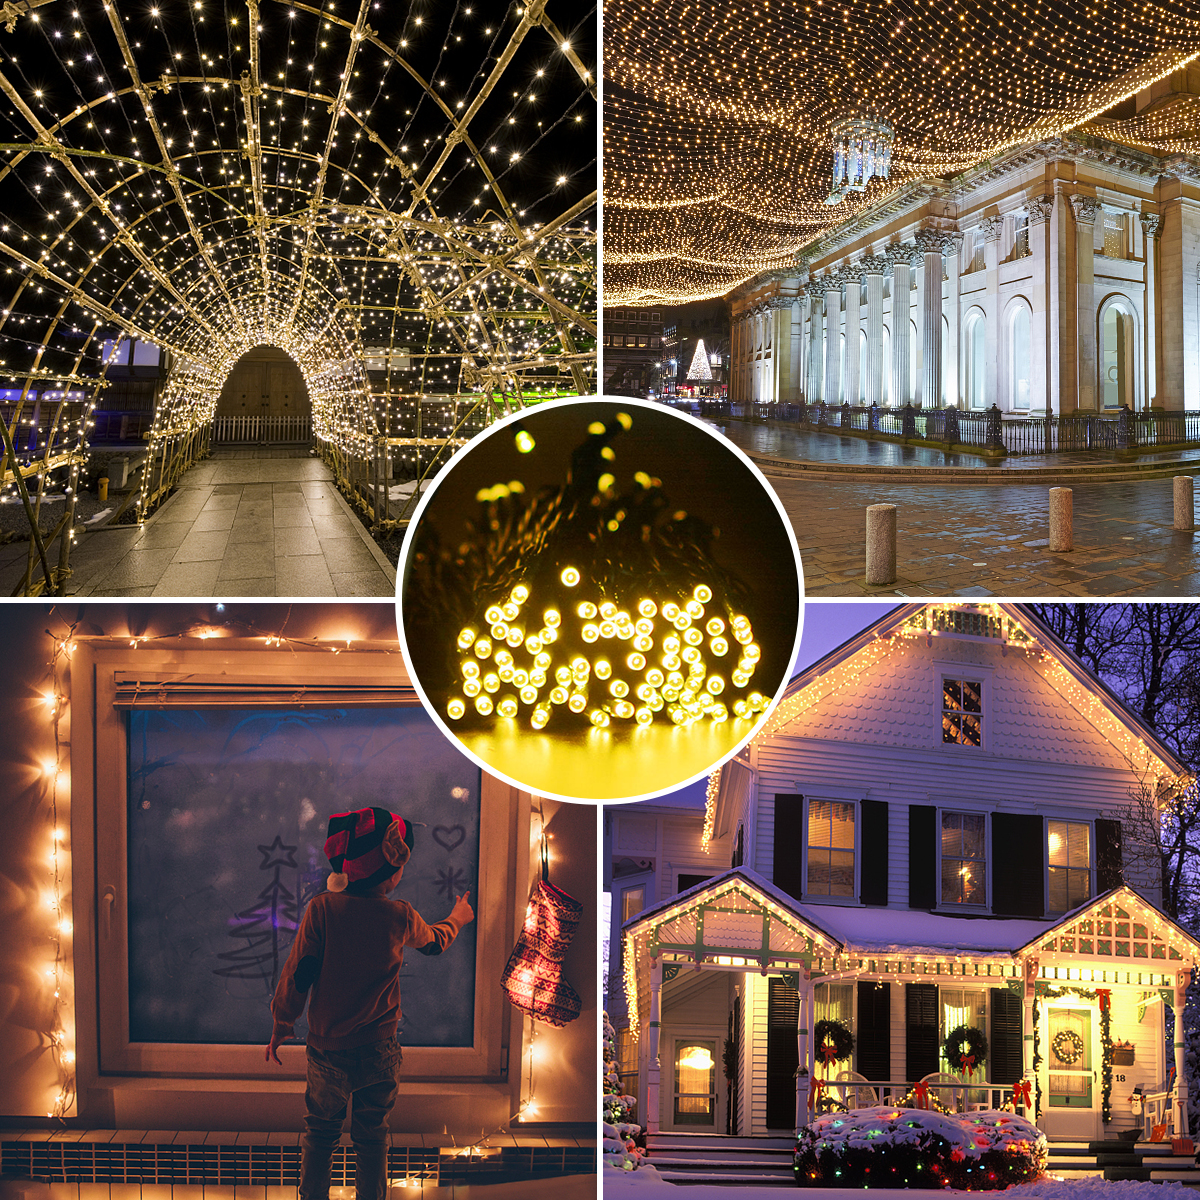 (2-Packs)Solar Rope String Lights Outdoor Decoration Lights,72ft 200 LED Waterproof Fairy Copper Wire Solar String Lights for Indoor Outdoor Patio,Lawn,Garden (Warm white) - image 1 de 15